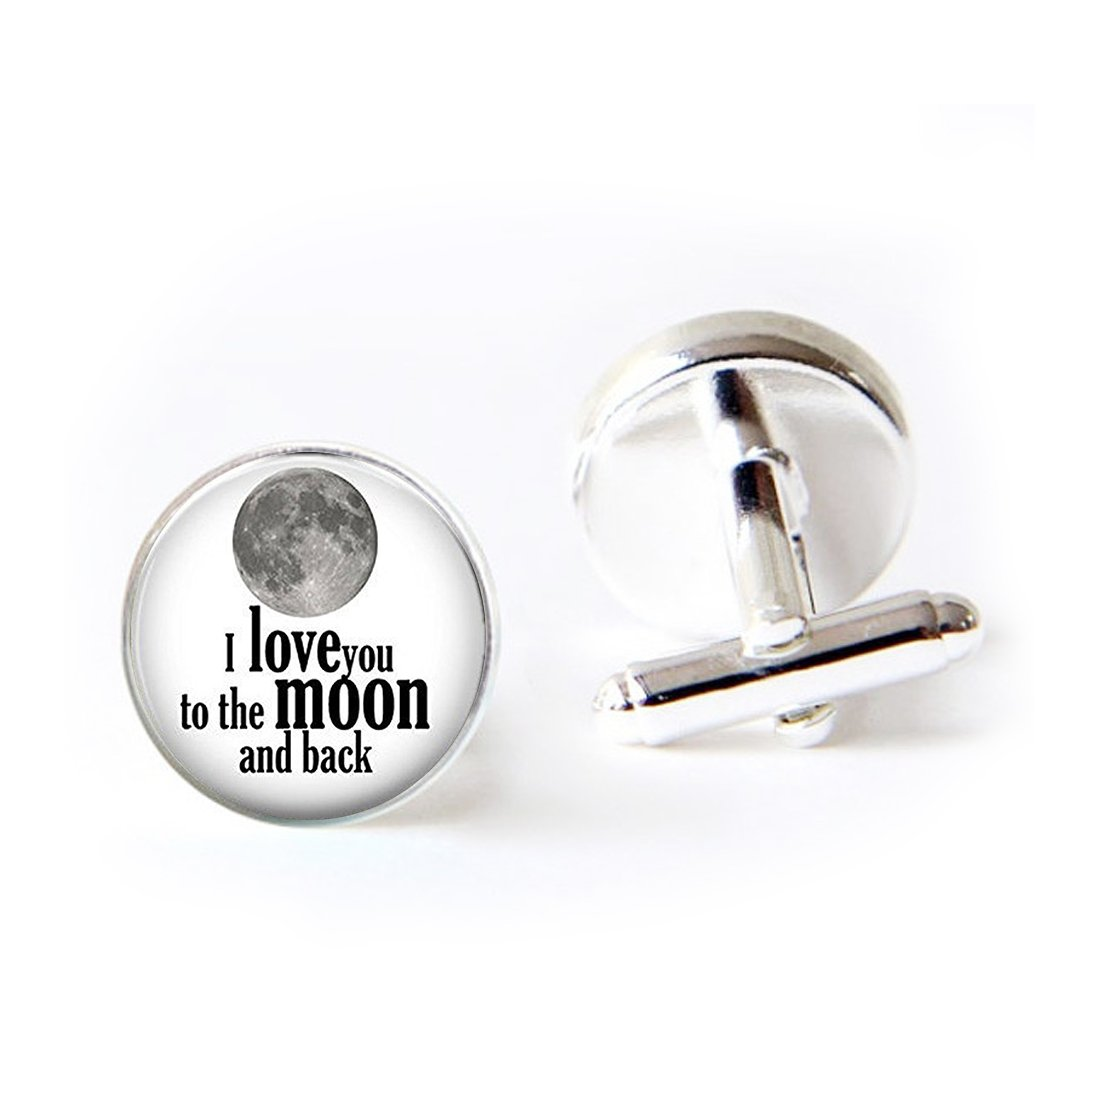 Unique Round Cufflinks Set I Love You to the Moon and Back Glass Cuff Dress Shirt Links Wedding Business Anniversary Gift for Him